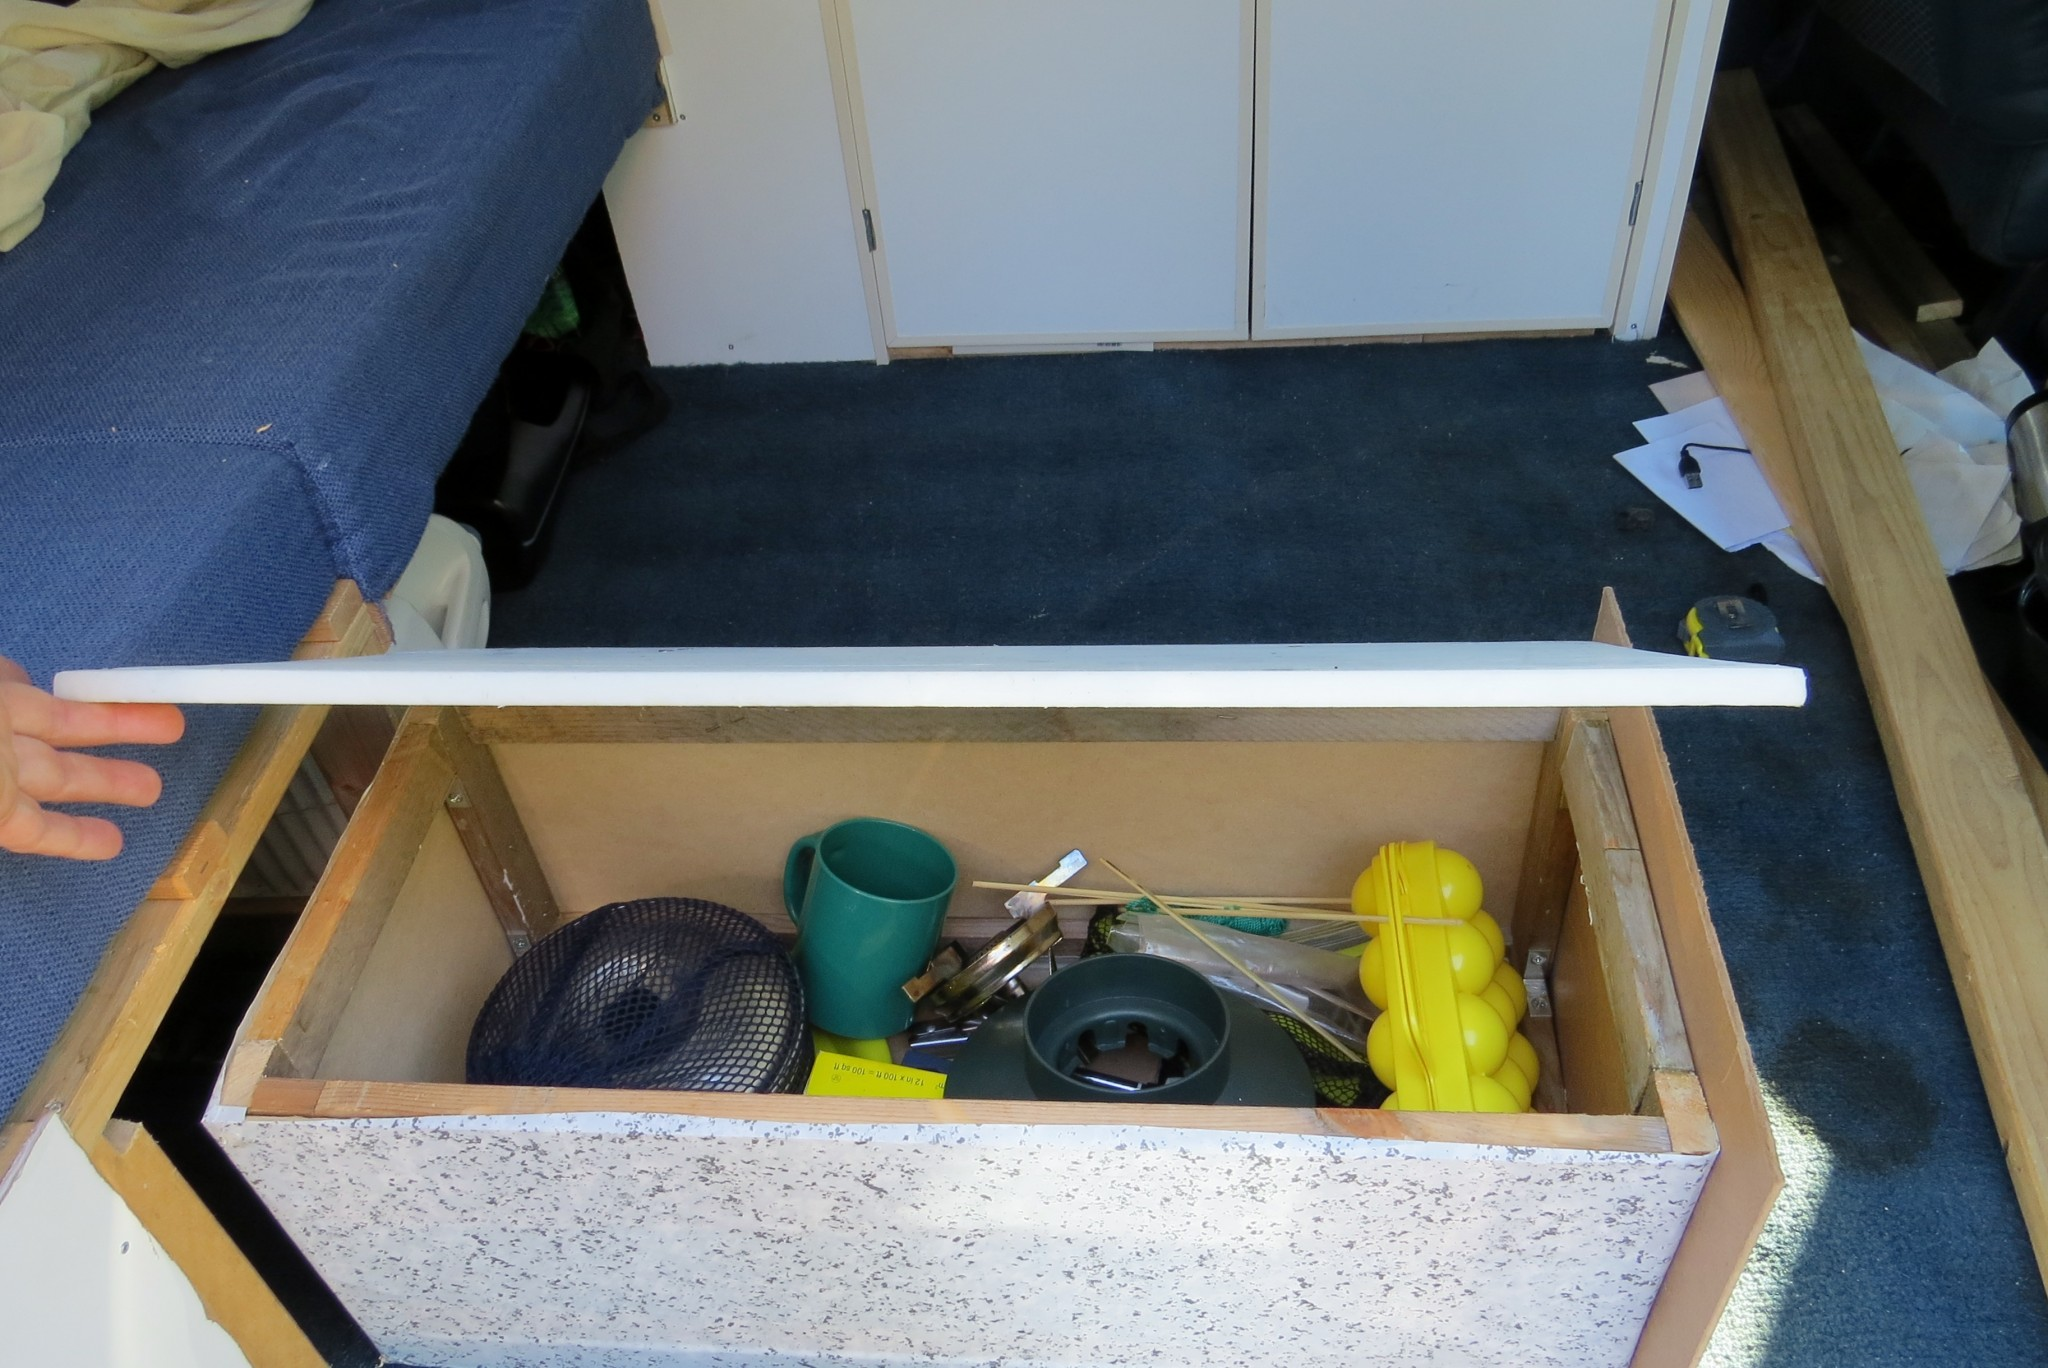 Astro van conversion under seat storage open